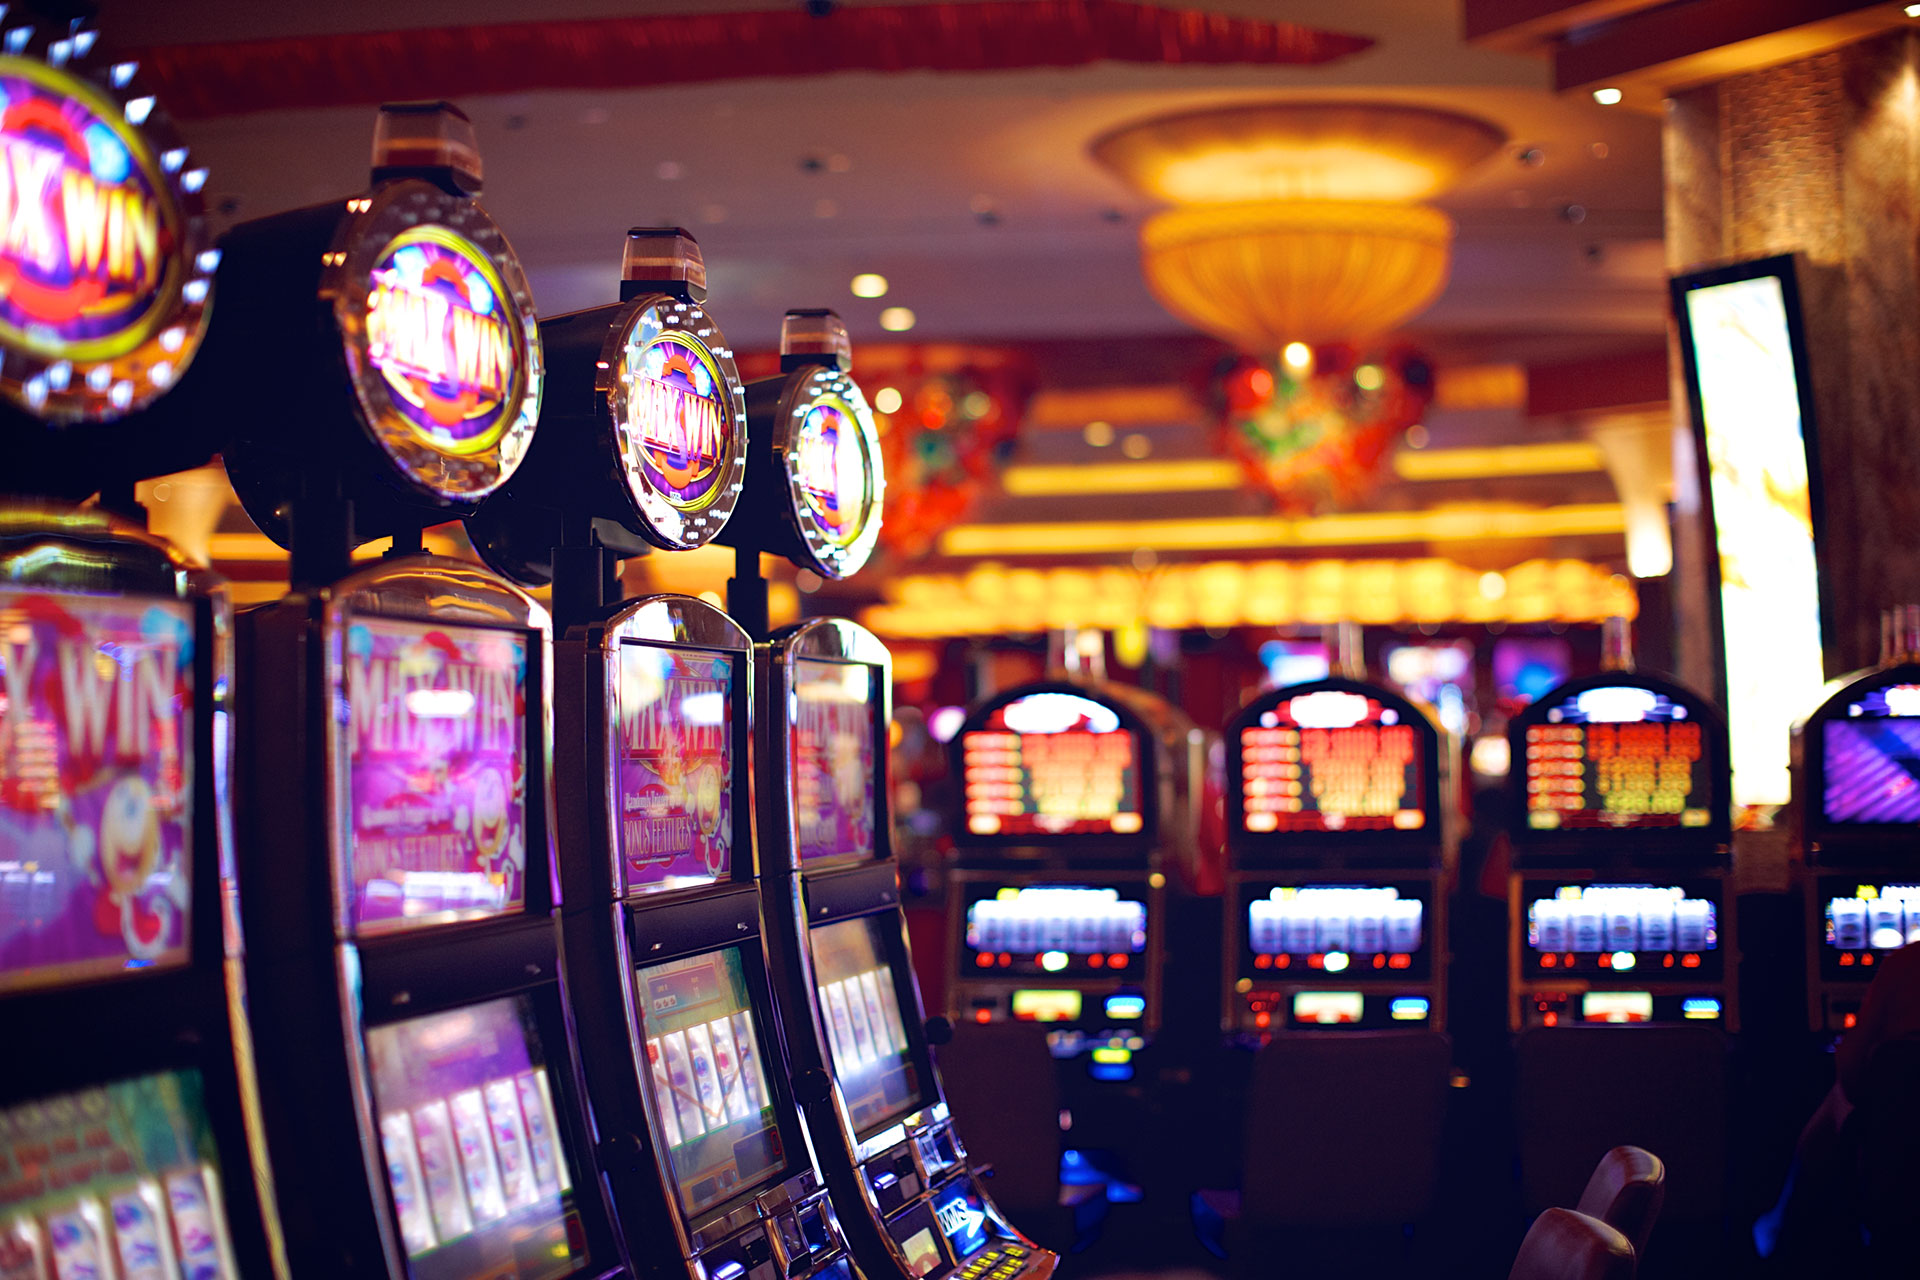 Play Casino Slots And Other Games For Fun And Real Money!